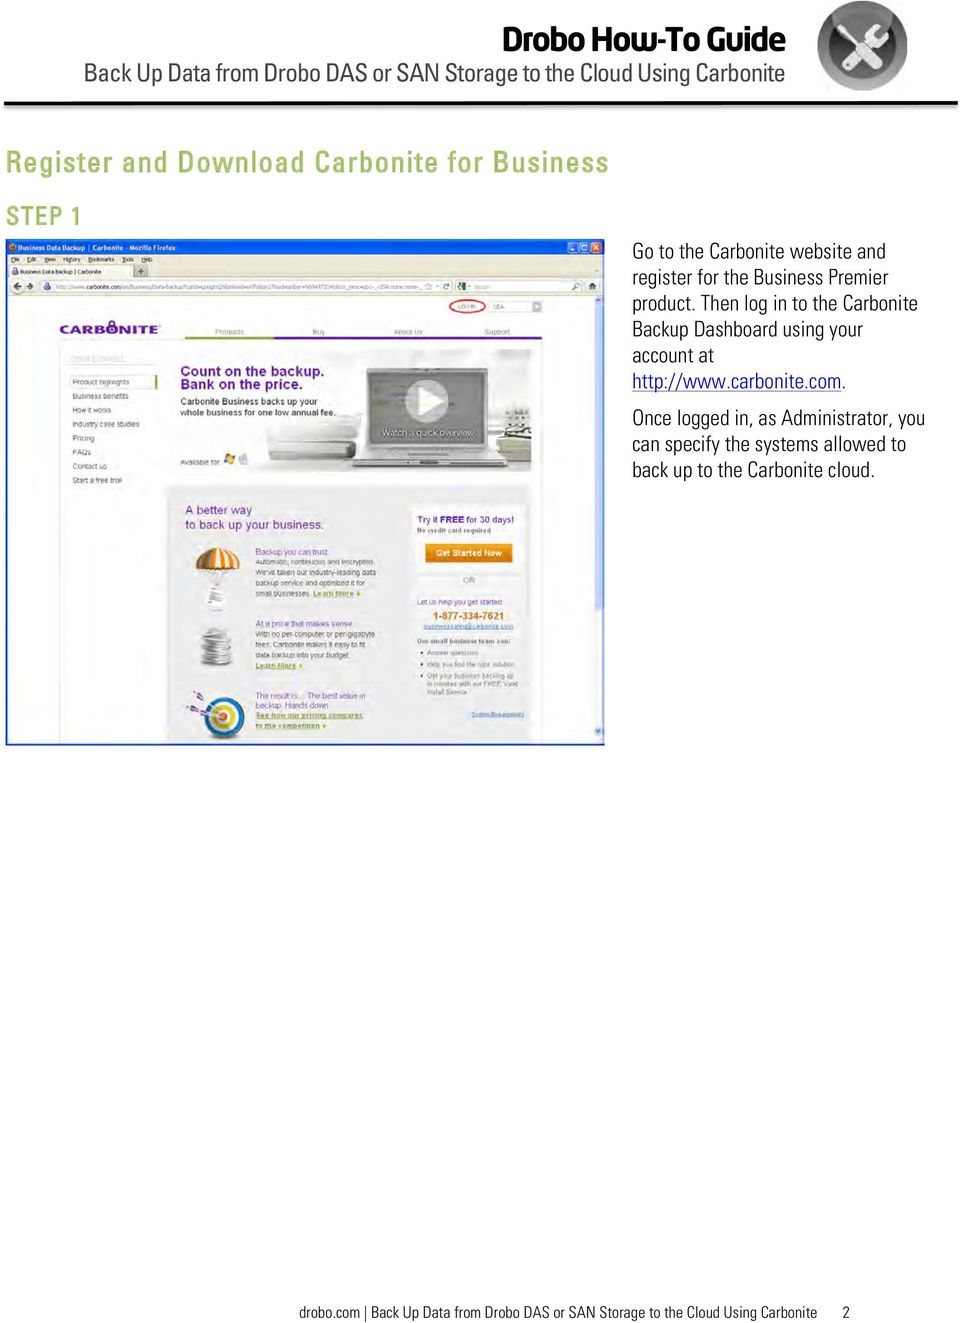 Then log in to the Carbonite Backup Dashboard using your account at http://www.